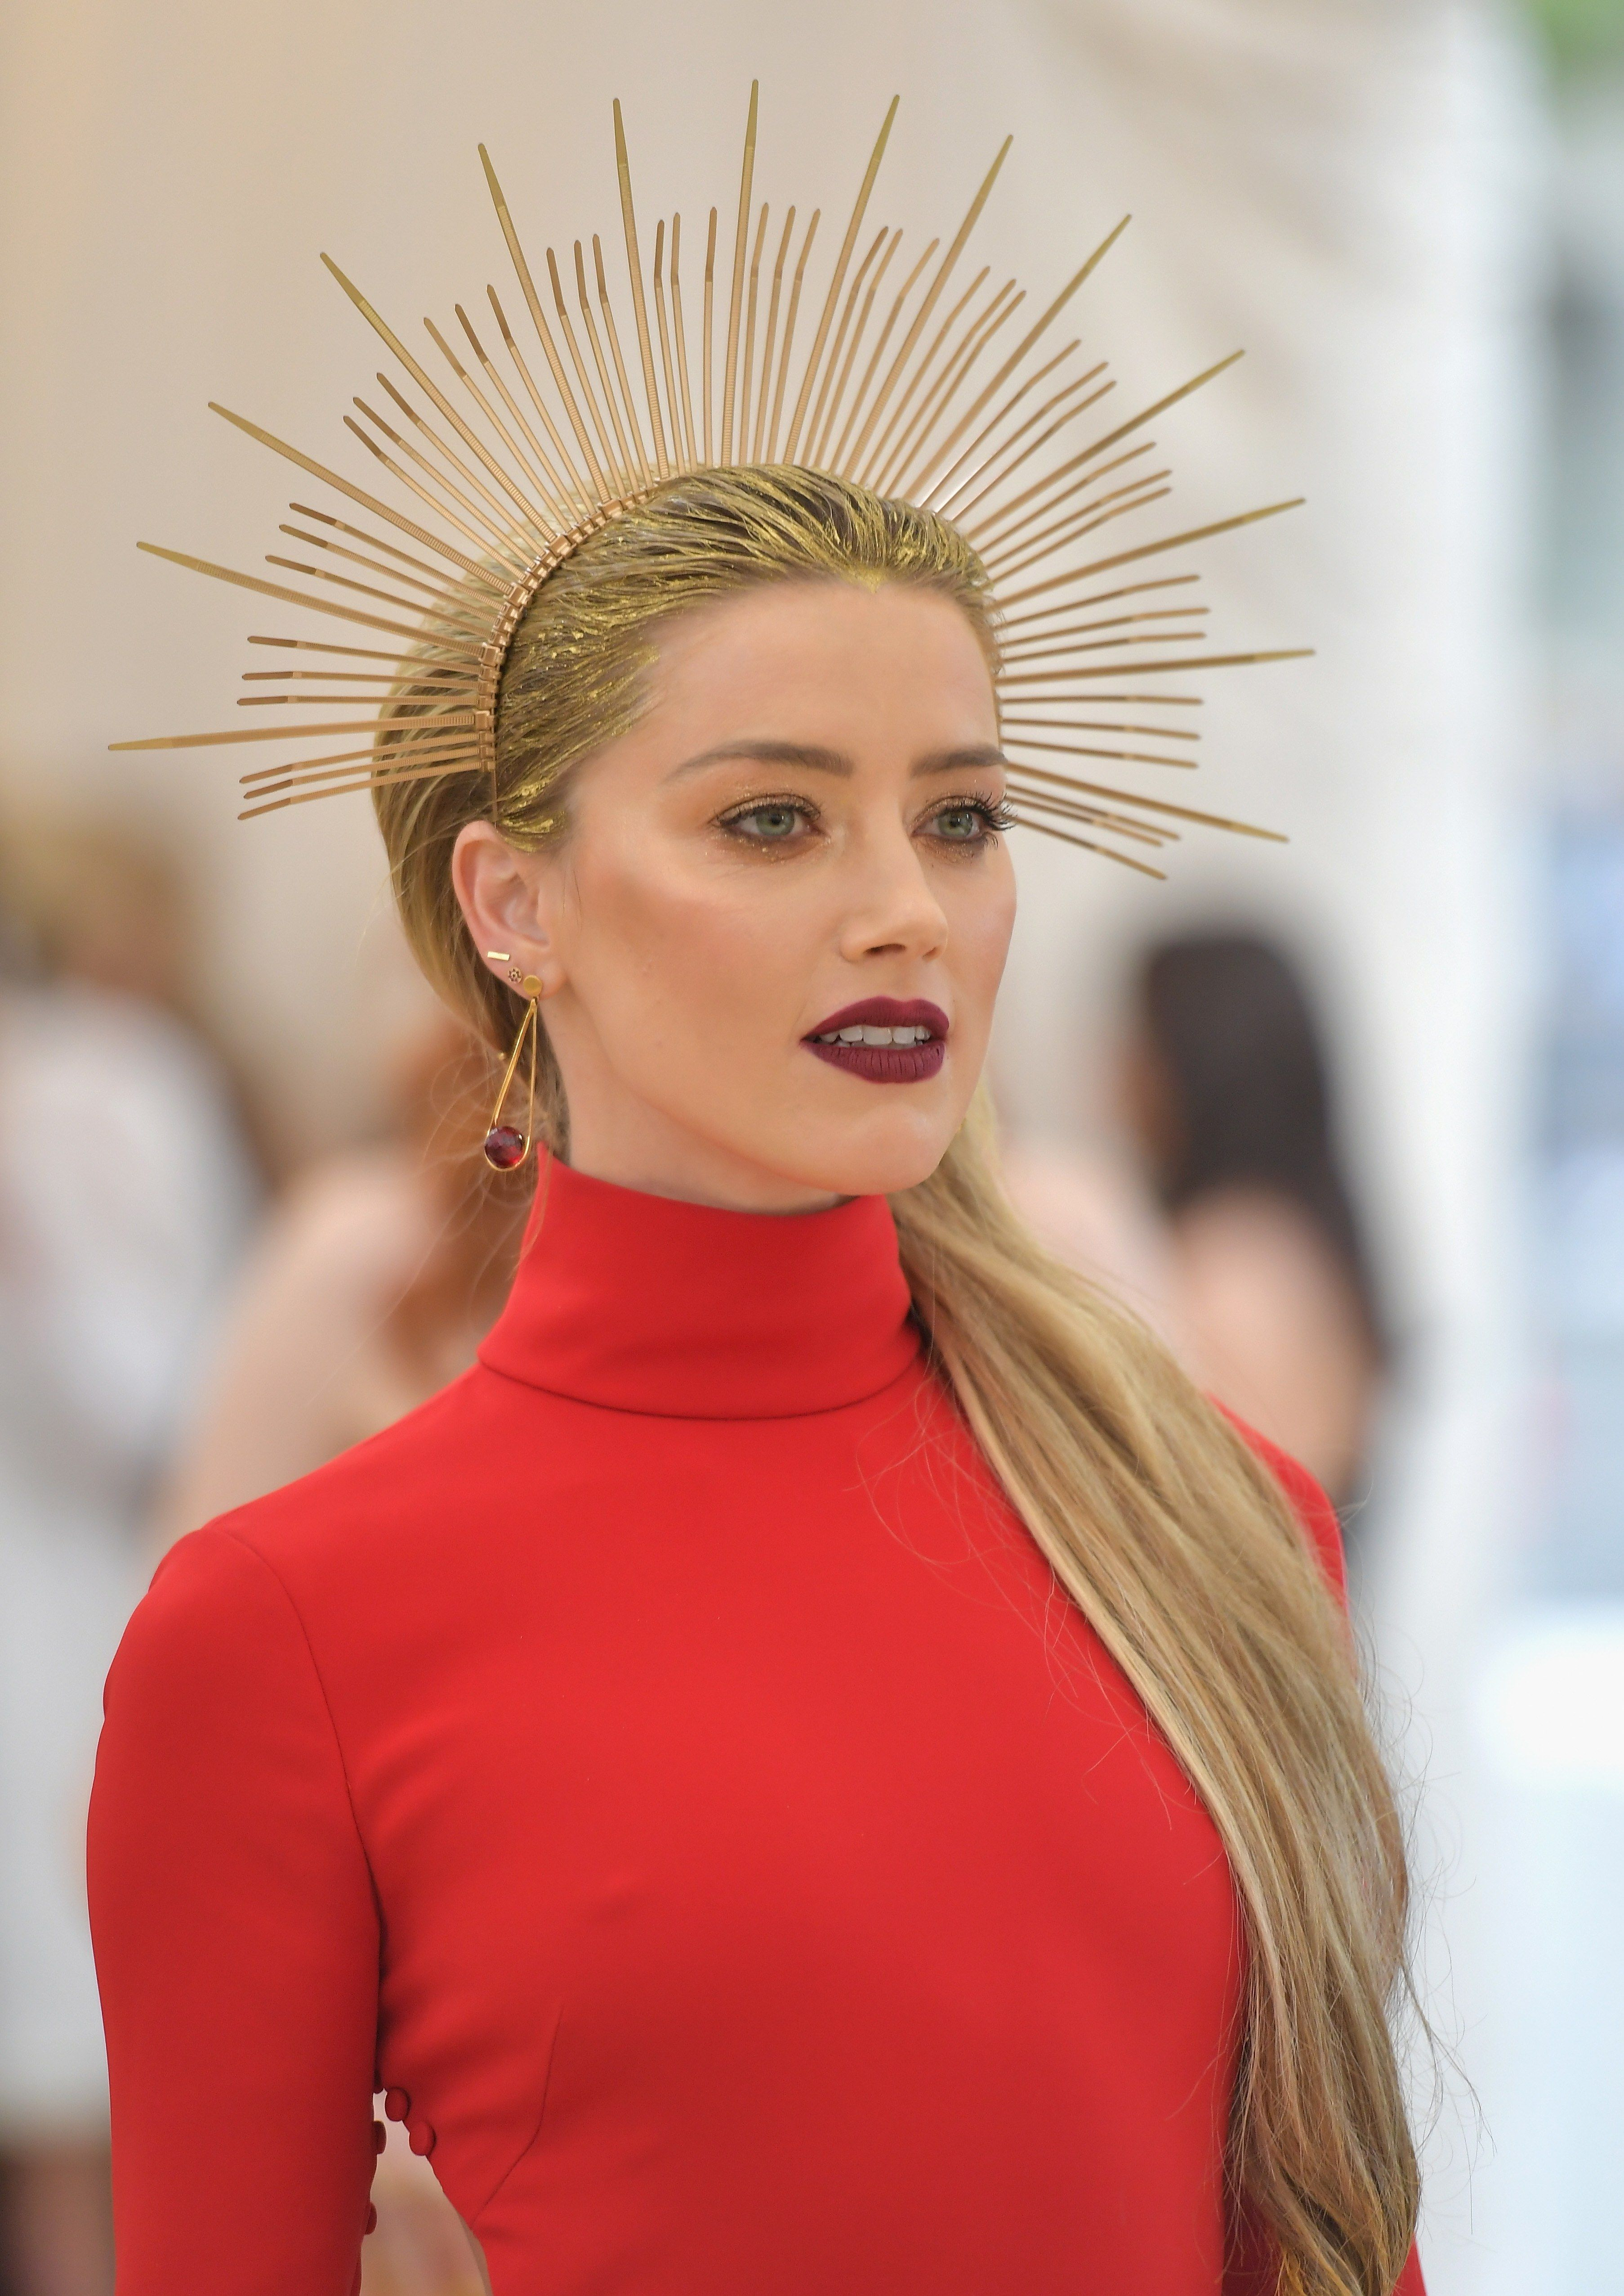 All The Stunning Crowns Celebrities Wore At The 2018 Met Gala Met Gala 2018 Met Gala Red Carpet Met Gala